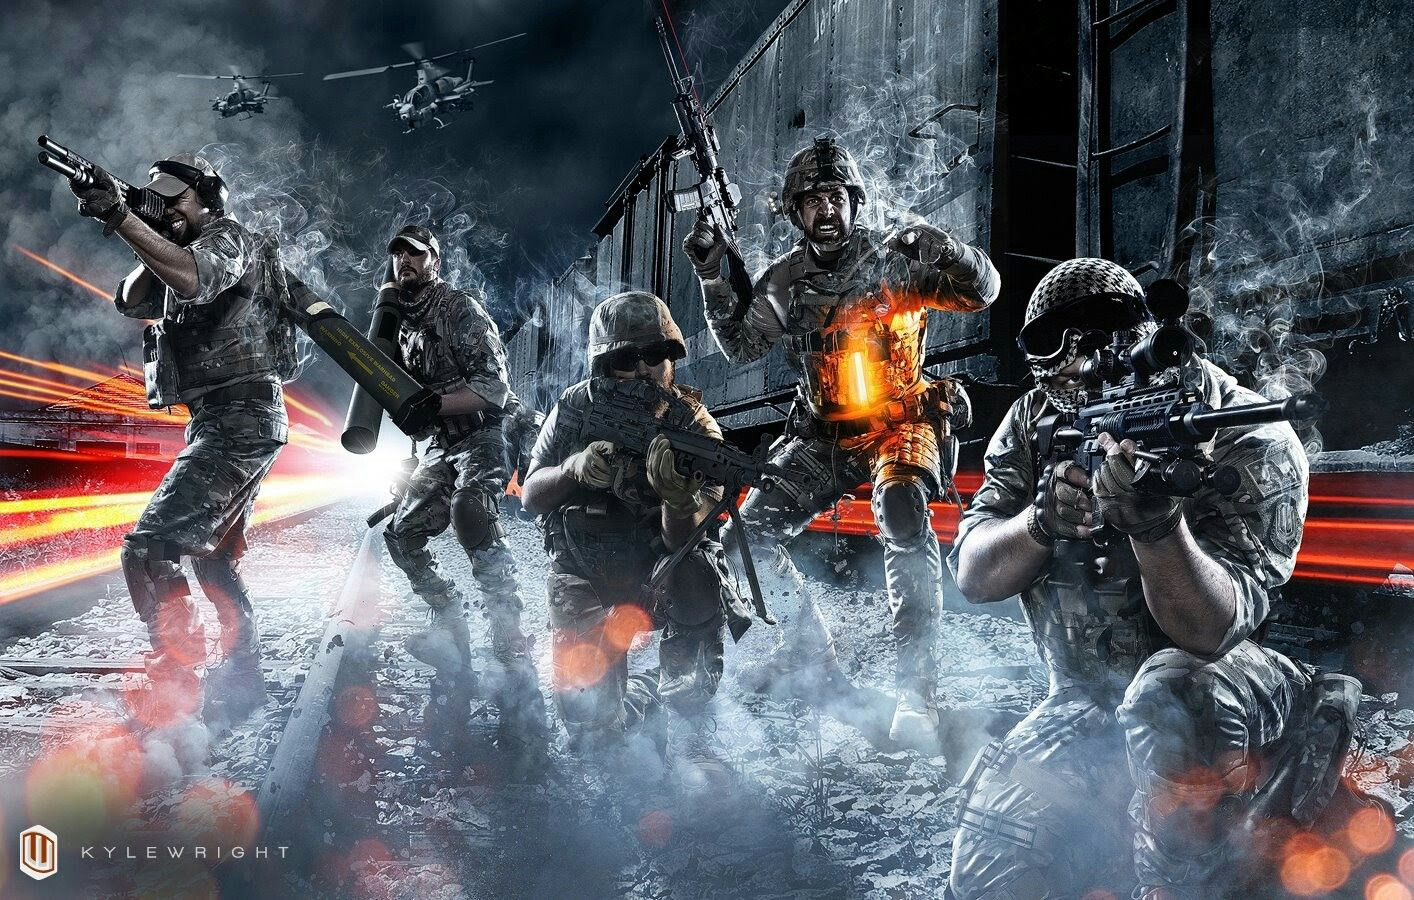 Pin By Dima Olivetti On Soldier With Images Battlefield 3